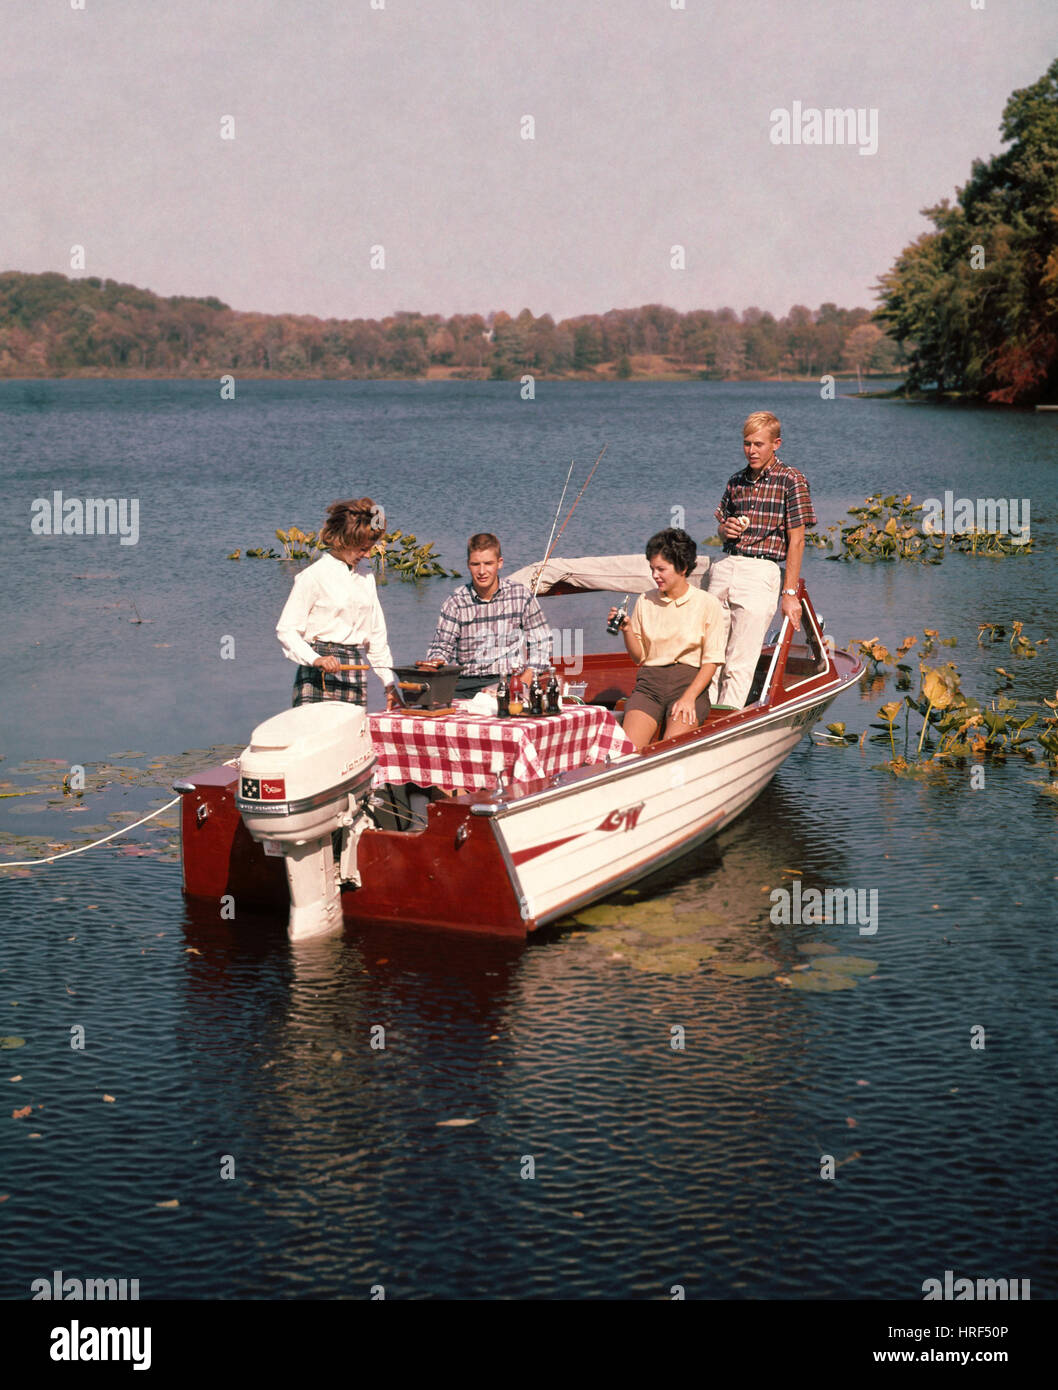 Picnic On a Boat, 1950's Americana - Stock Image